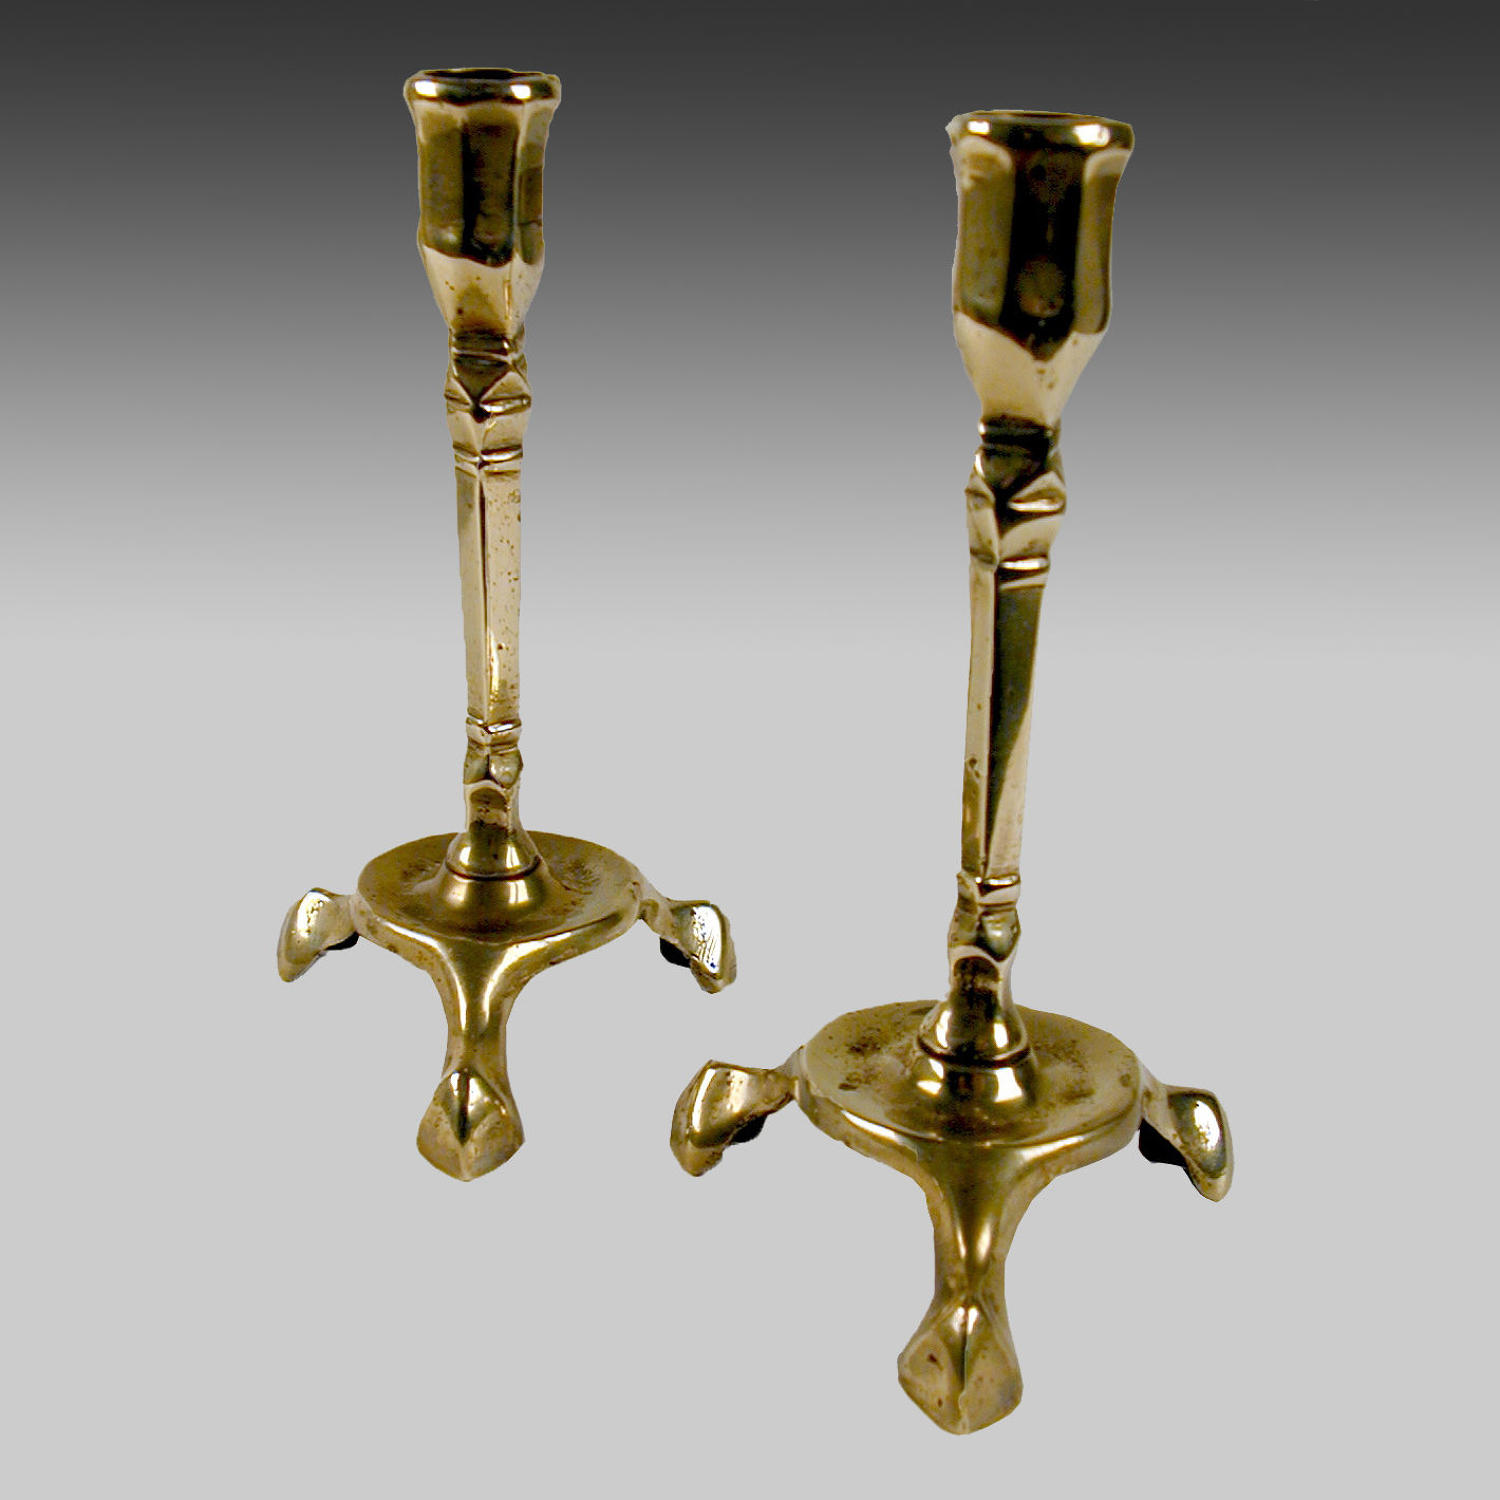 A rare pair18th century brass candlesticks